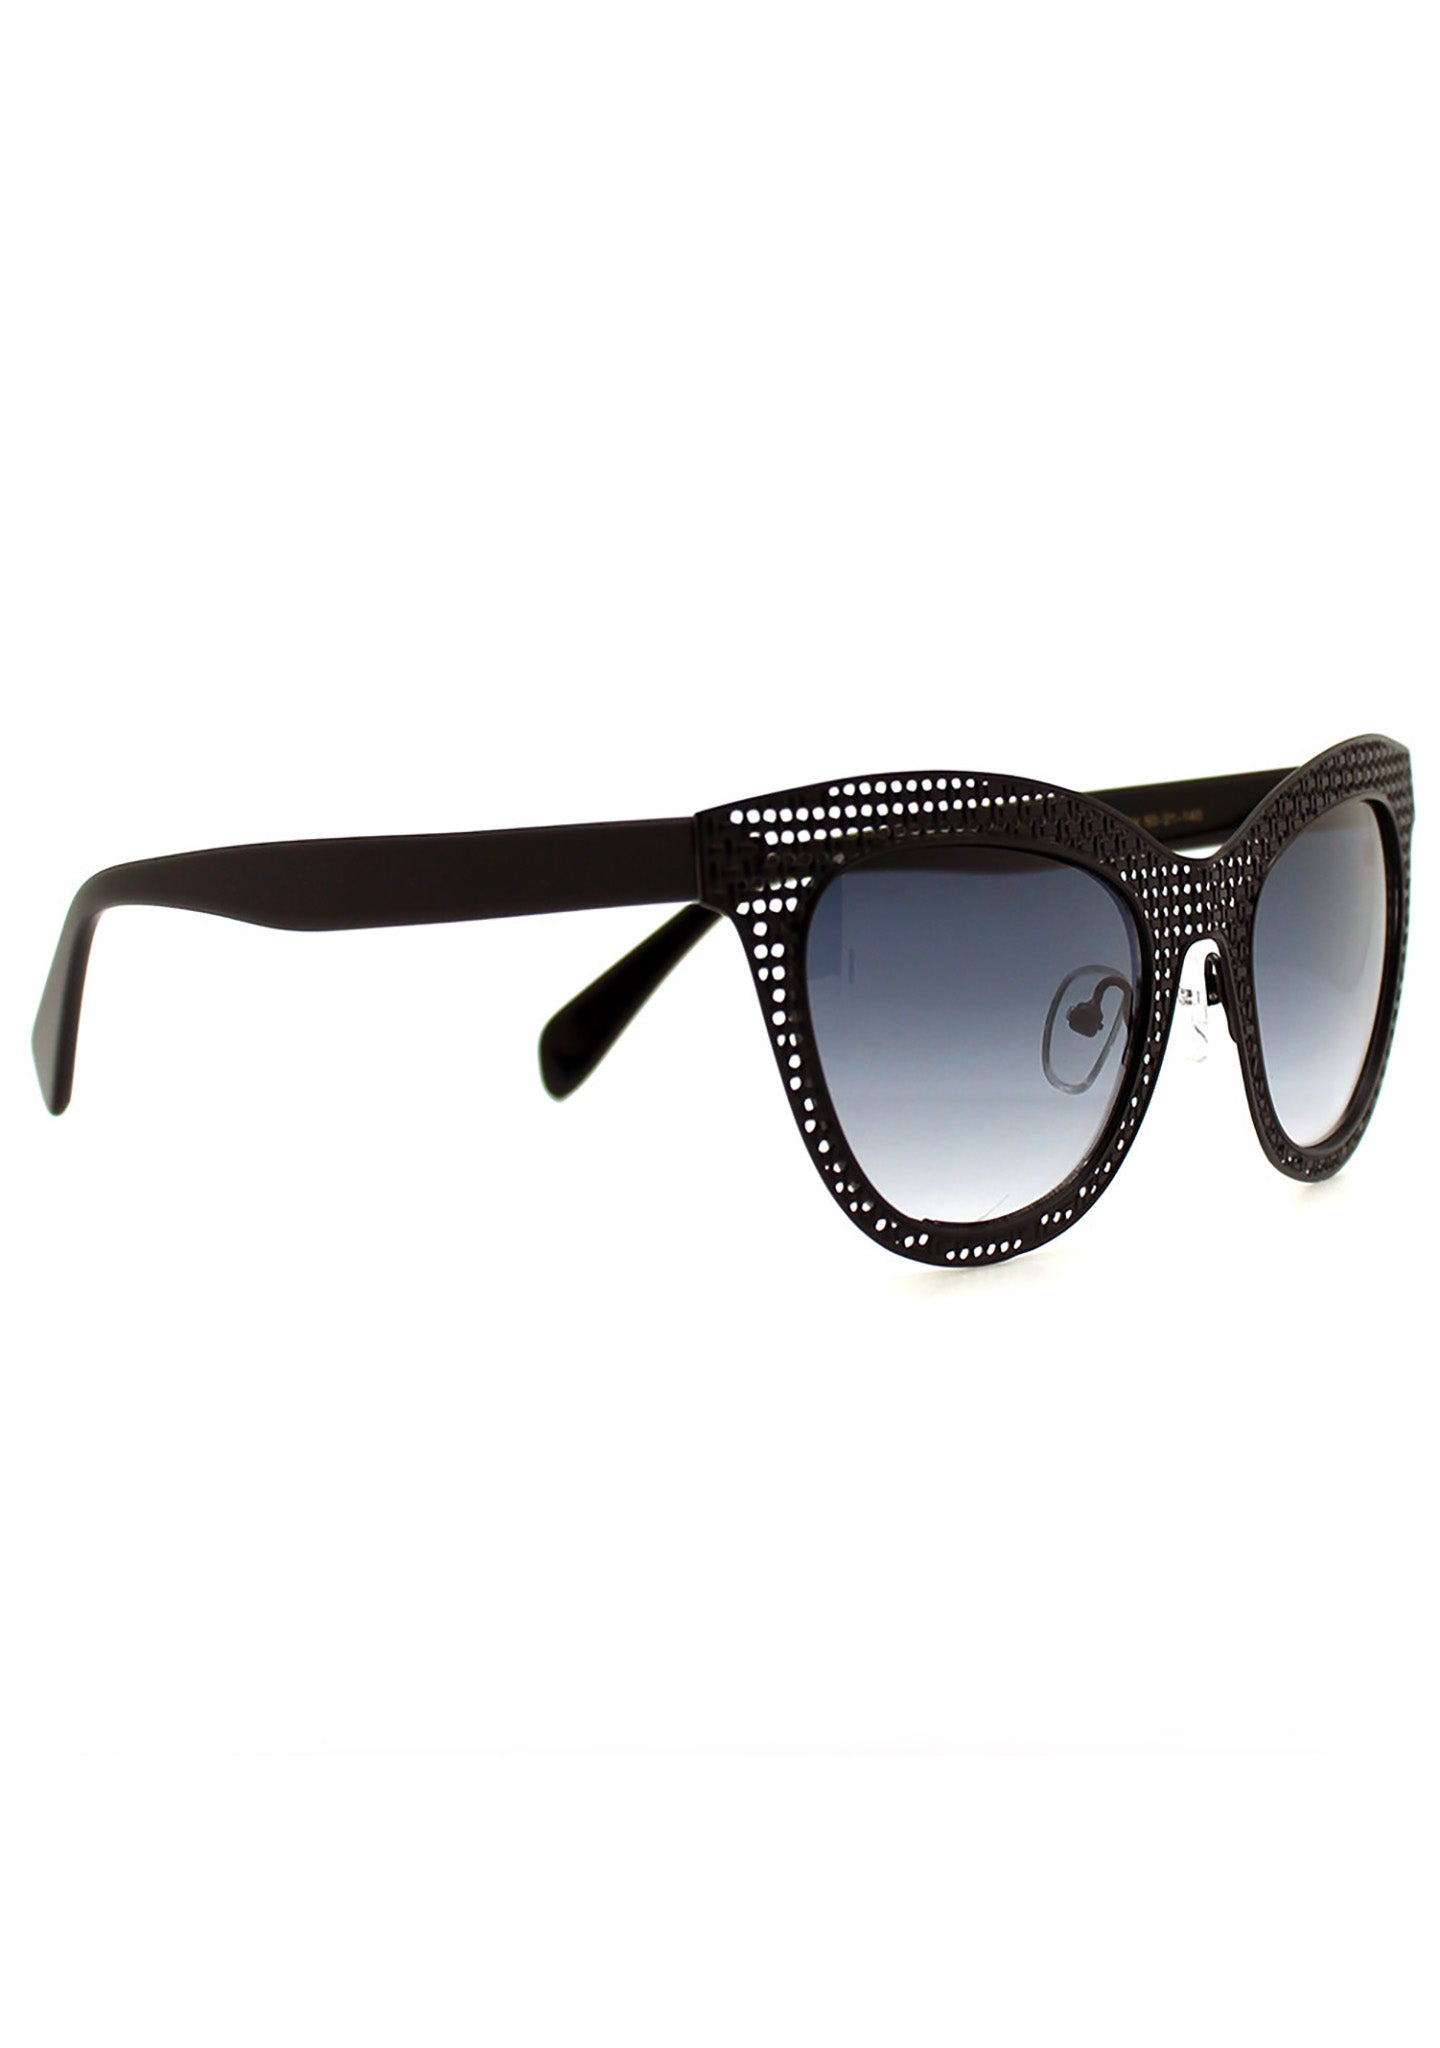 Betsey Johnson Shine Betsey Sunglasses in Black